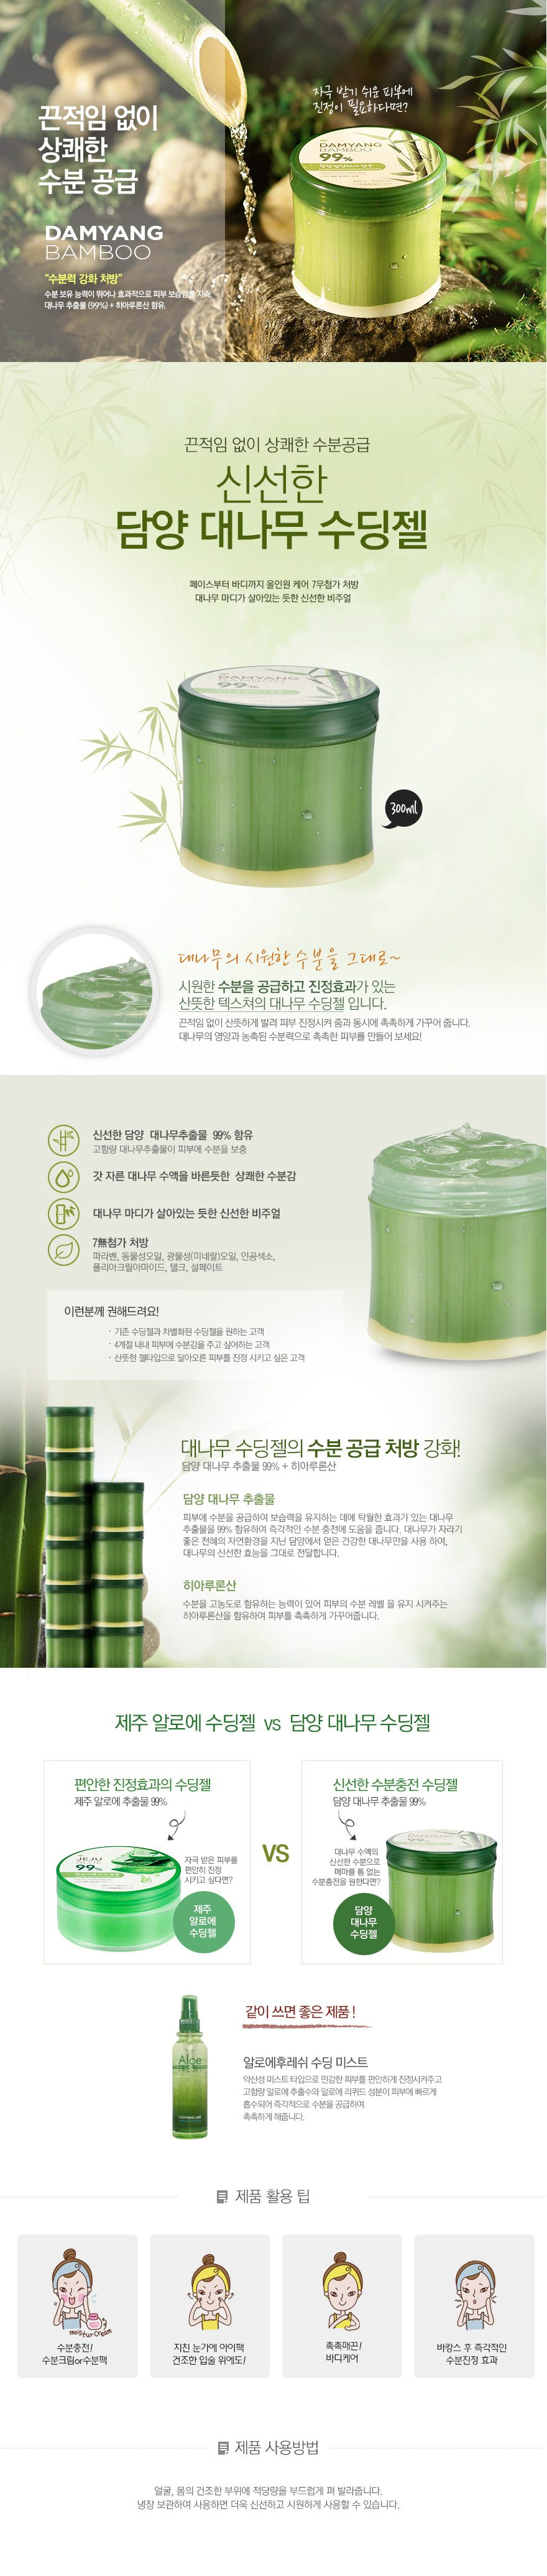 The Face Shop Damyang Bamboo Fresh Soothing Gel 99% 300ml malaysia singapore indonesia